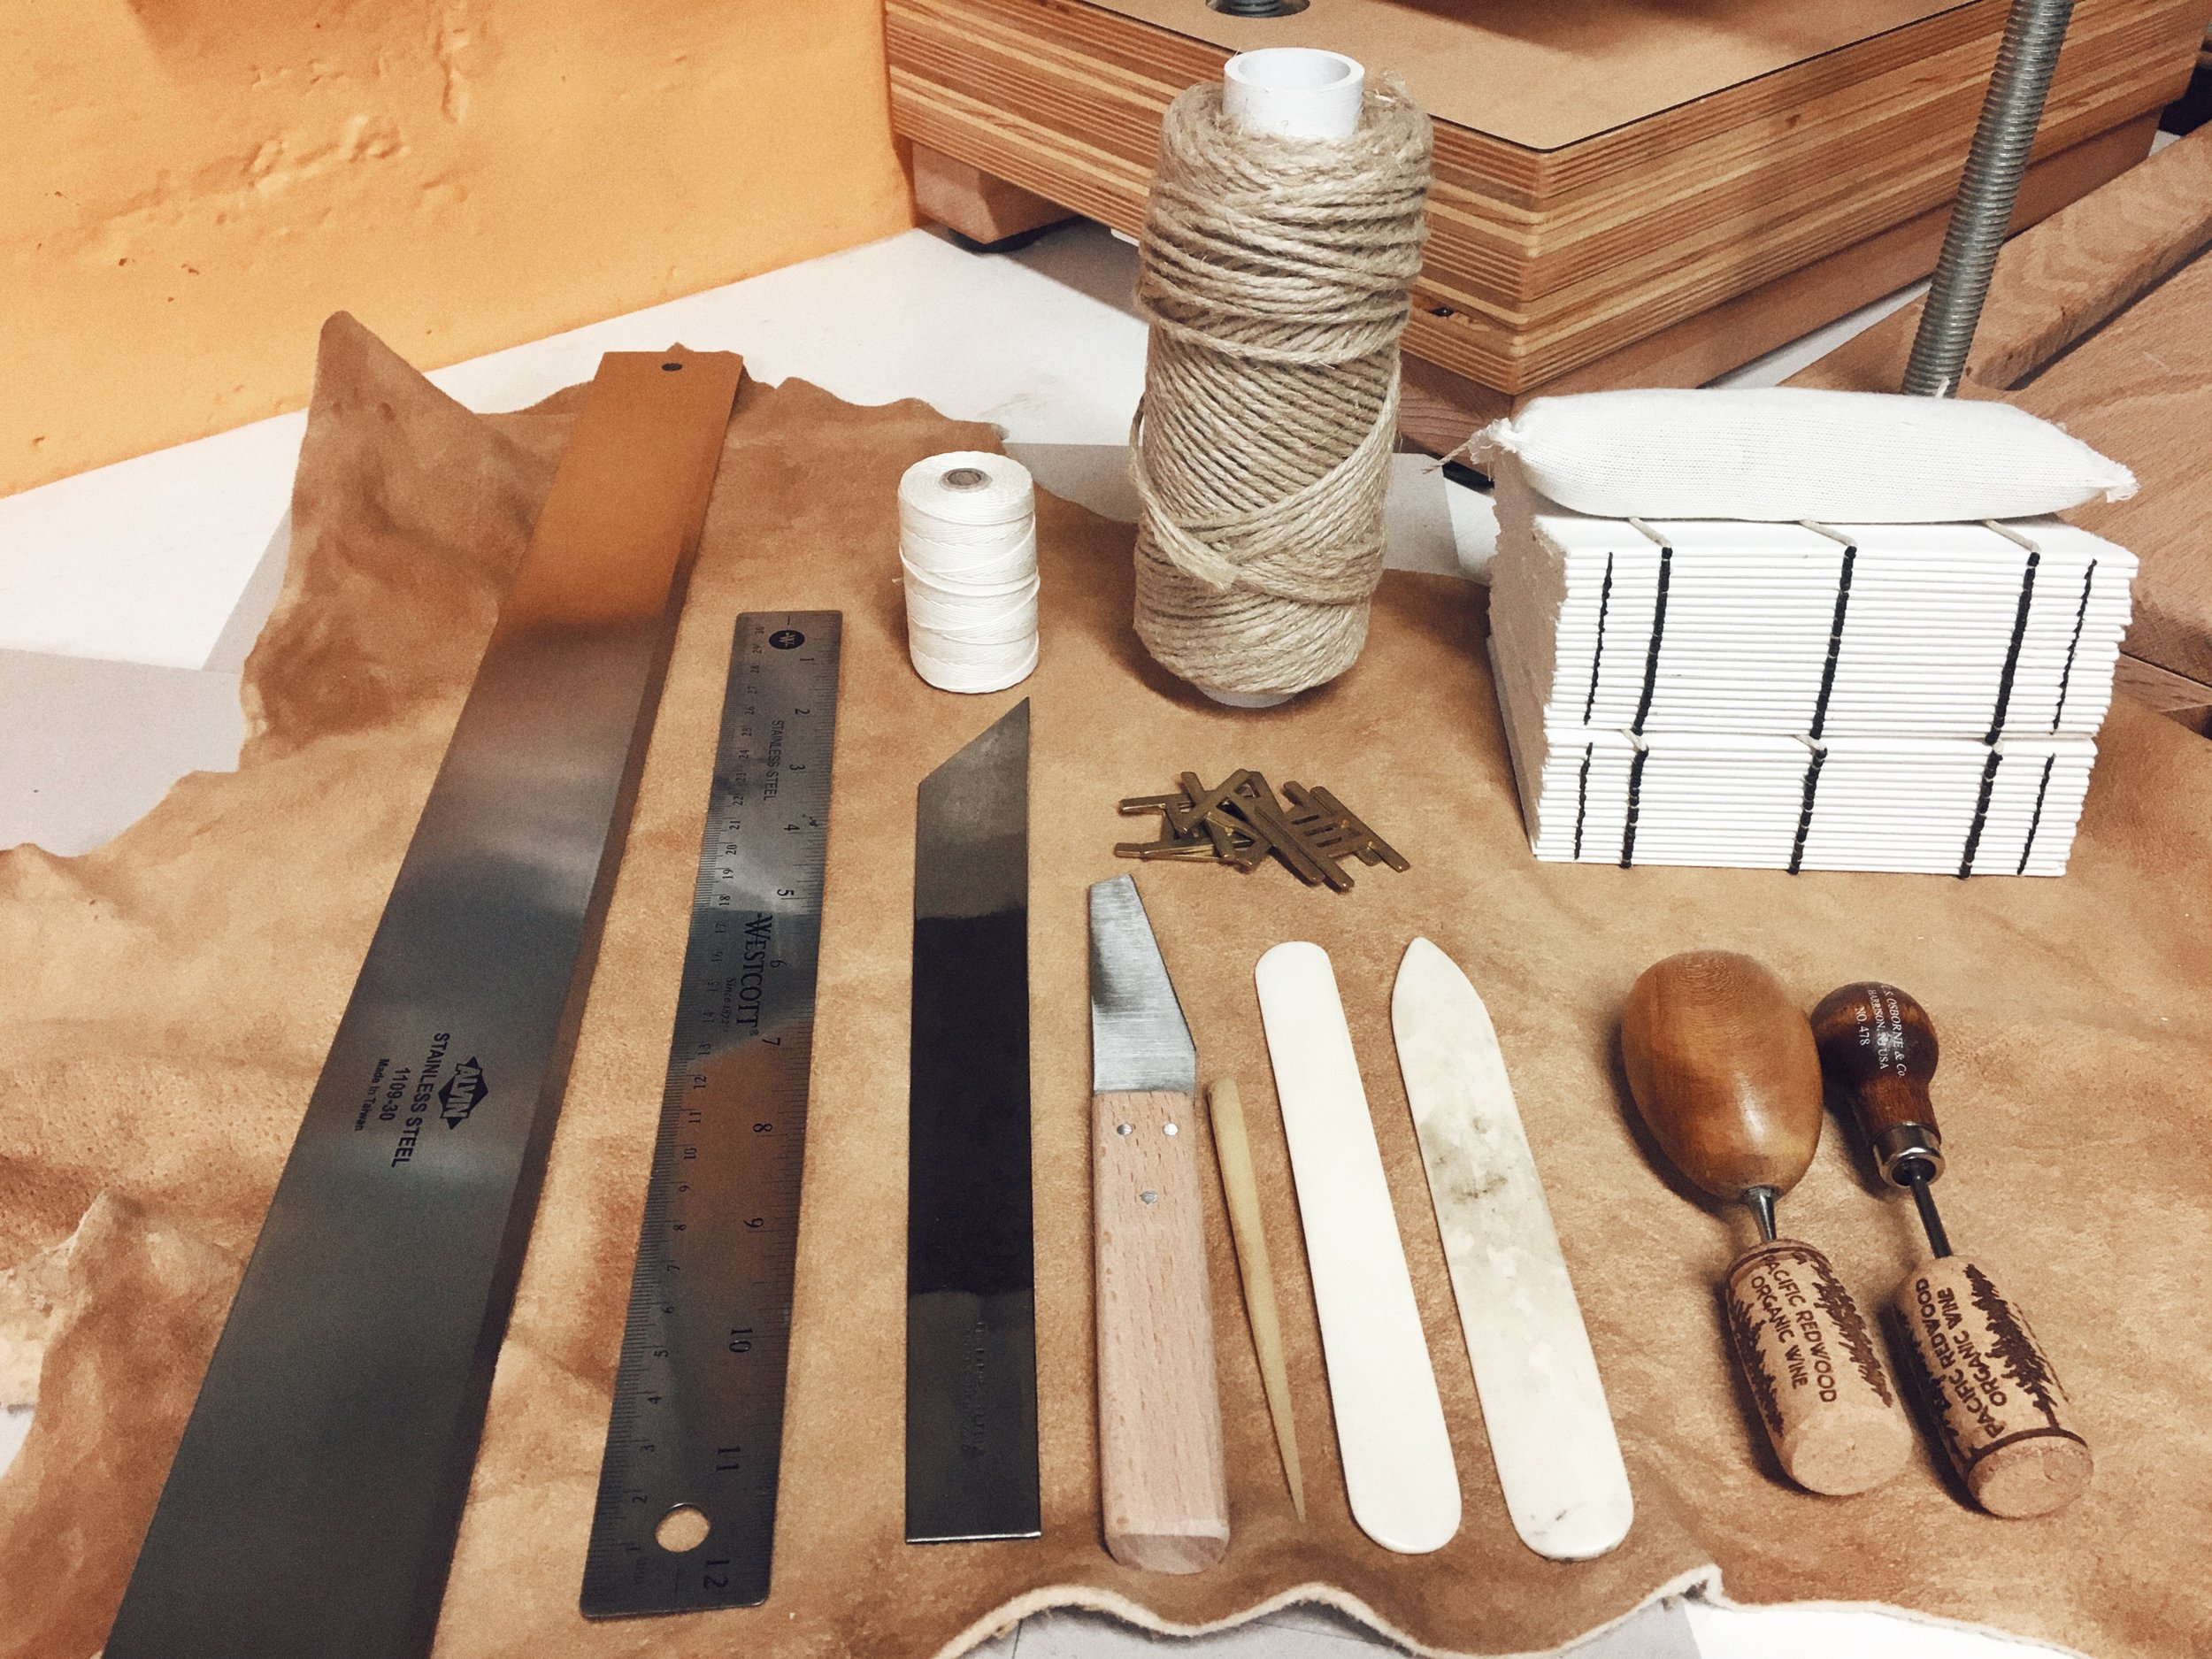 A selection of bookbinding tools. Clockwise from the top right : Blank text blocks, twine and linen thread, tear bar, ruler, English paring knife, leather knife, several bone folds and awls, and sewing keys in the middle. You can see hand-tanned leather as a backdrop and a bit of my press and sewing frame in the background.